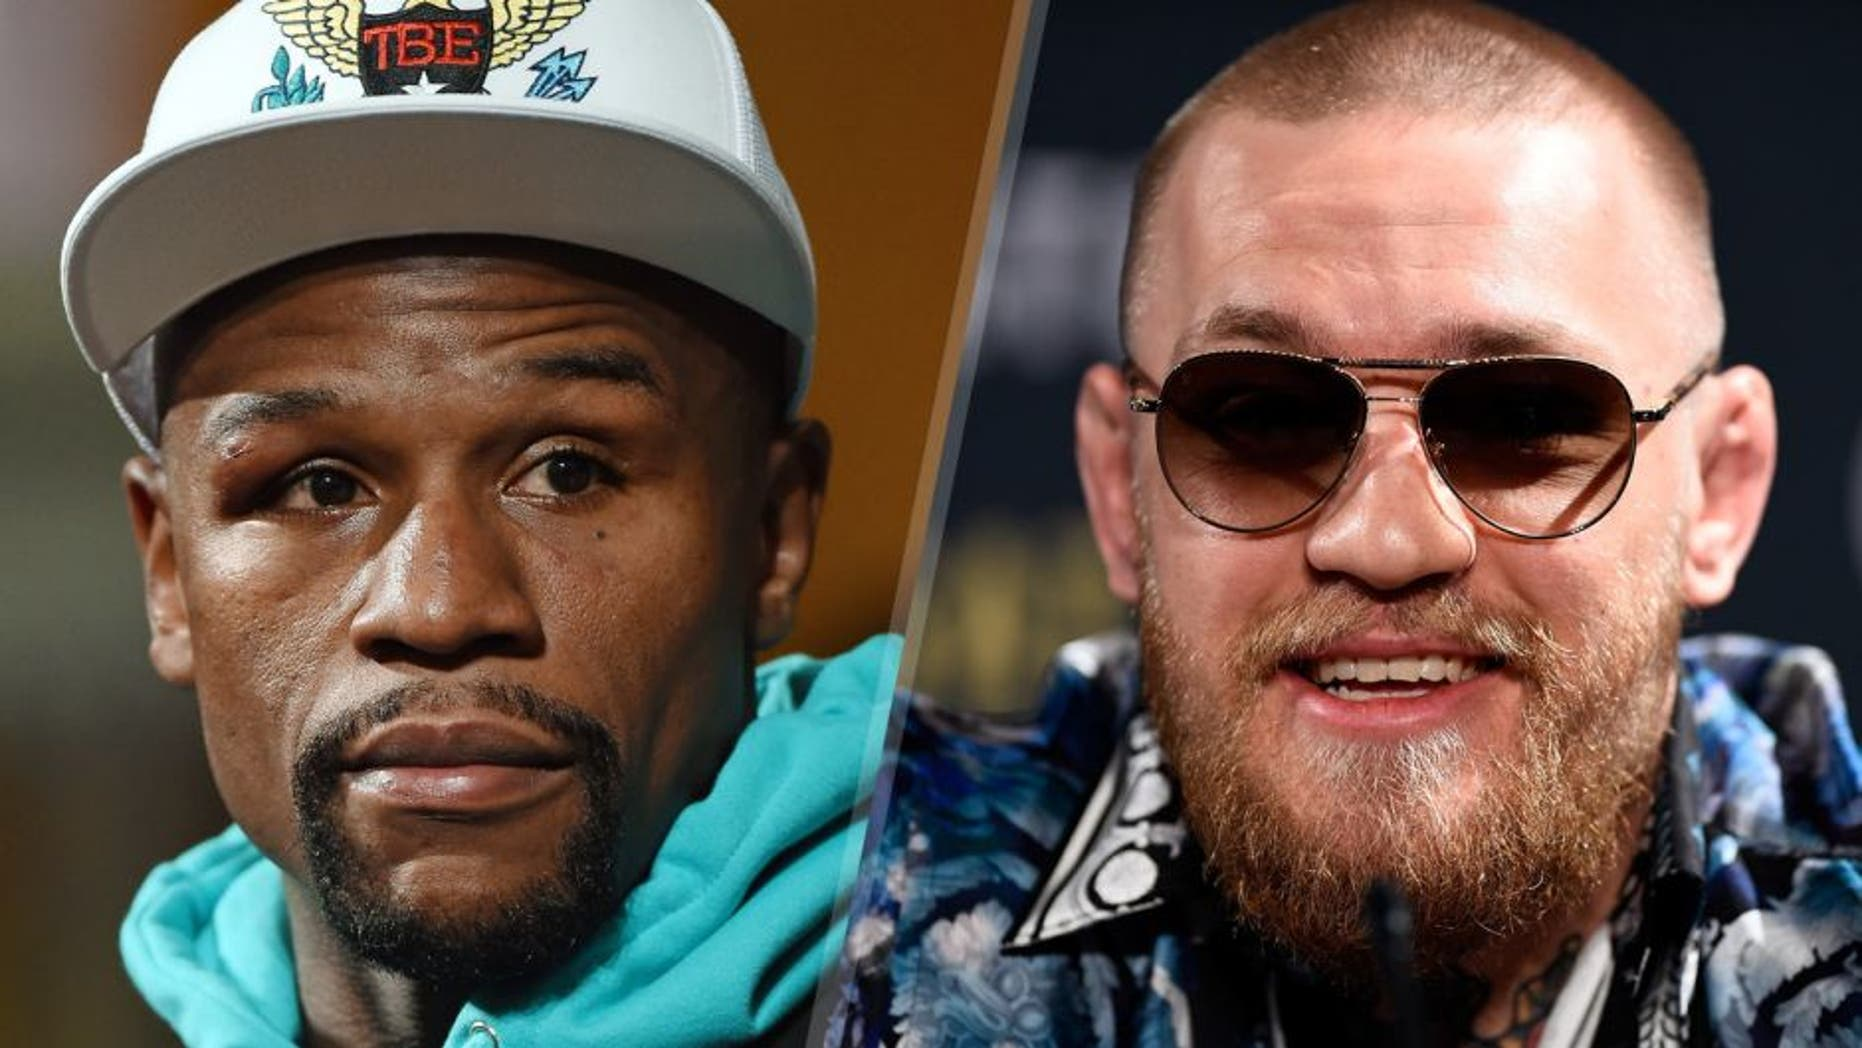 Floyd Mayweather Jr. attends a post-fight news conference at MGM Grand Hotel & Casino after he retained his WBC/WBA welterweight titles in a unanimous-decision victory over Andre Berto on September 12, 2015 in Las Vegas, Nevada. (Photo by Ethan Miller/Getty Images) UFC featherweight champion and lightweight challenger Conor McGregor of Ireland interacts with the media during the UFC 197 on-sale press conference event inside MGM Grand Hotel & Casino on January 20, 2016 in Las Vegas, Nevada. (Photo by Jeff Bottari/Zuffa LLC/Zuffa LLC via Getty Images)